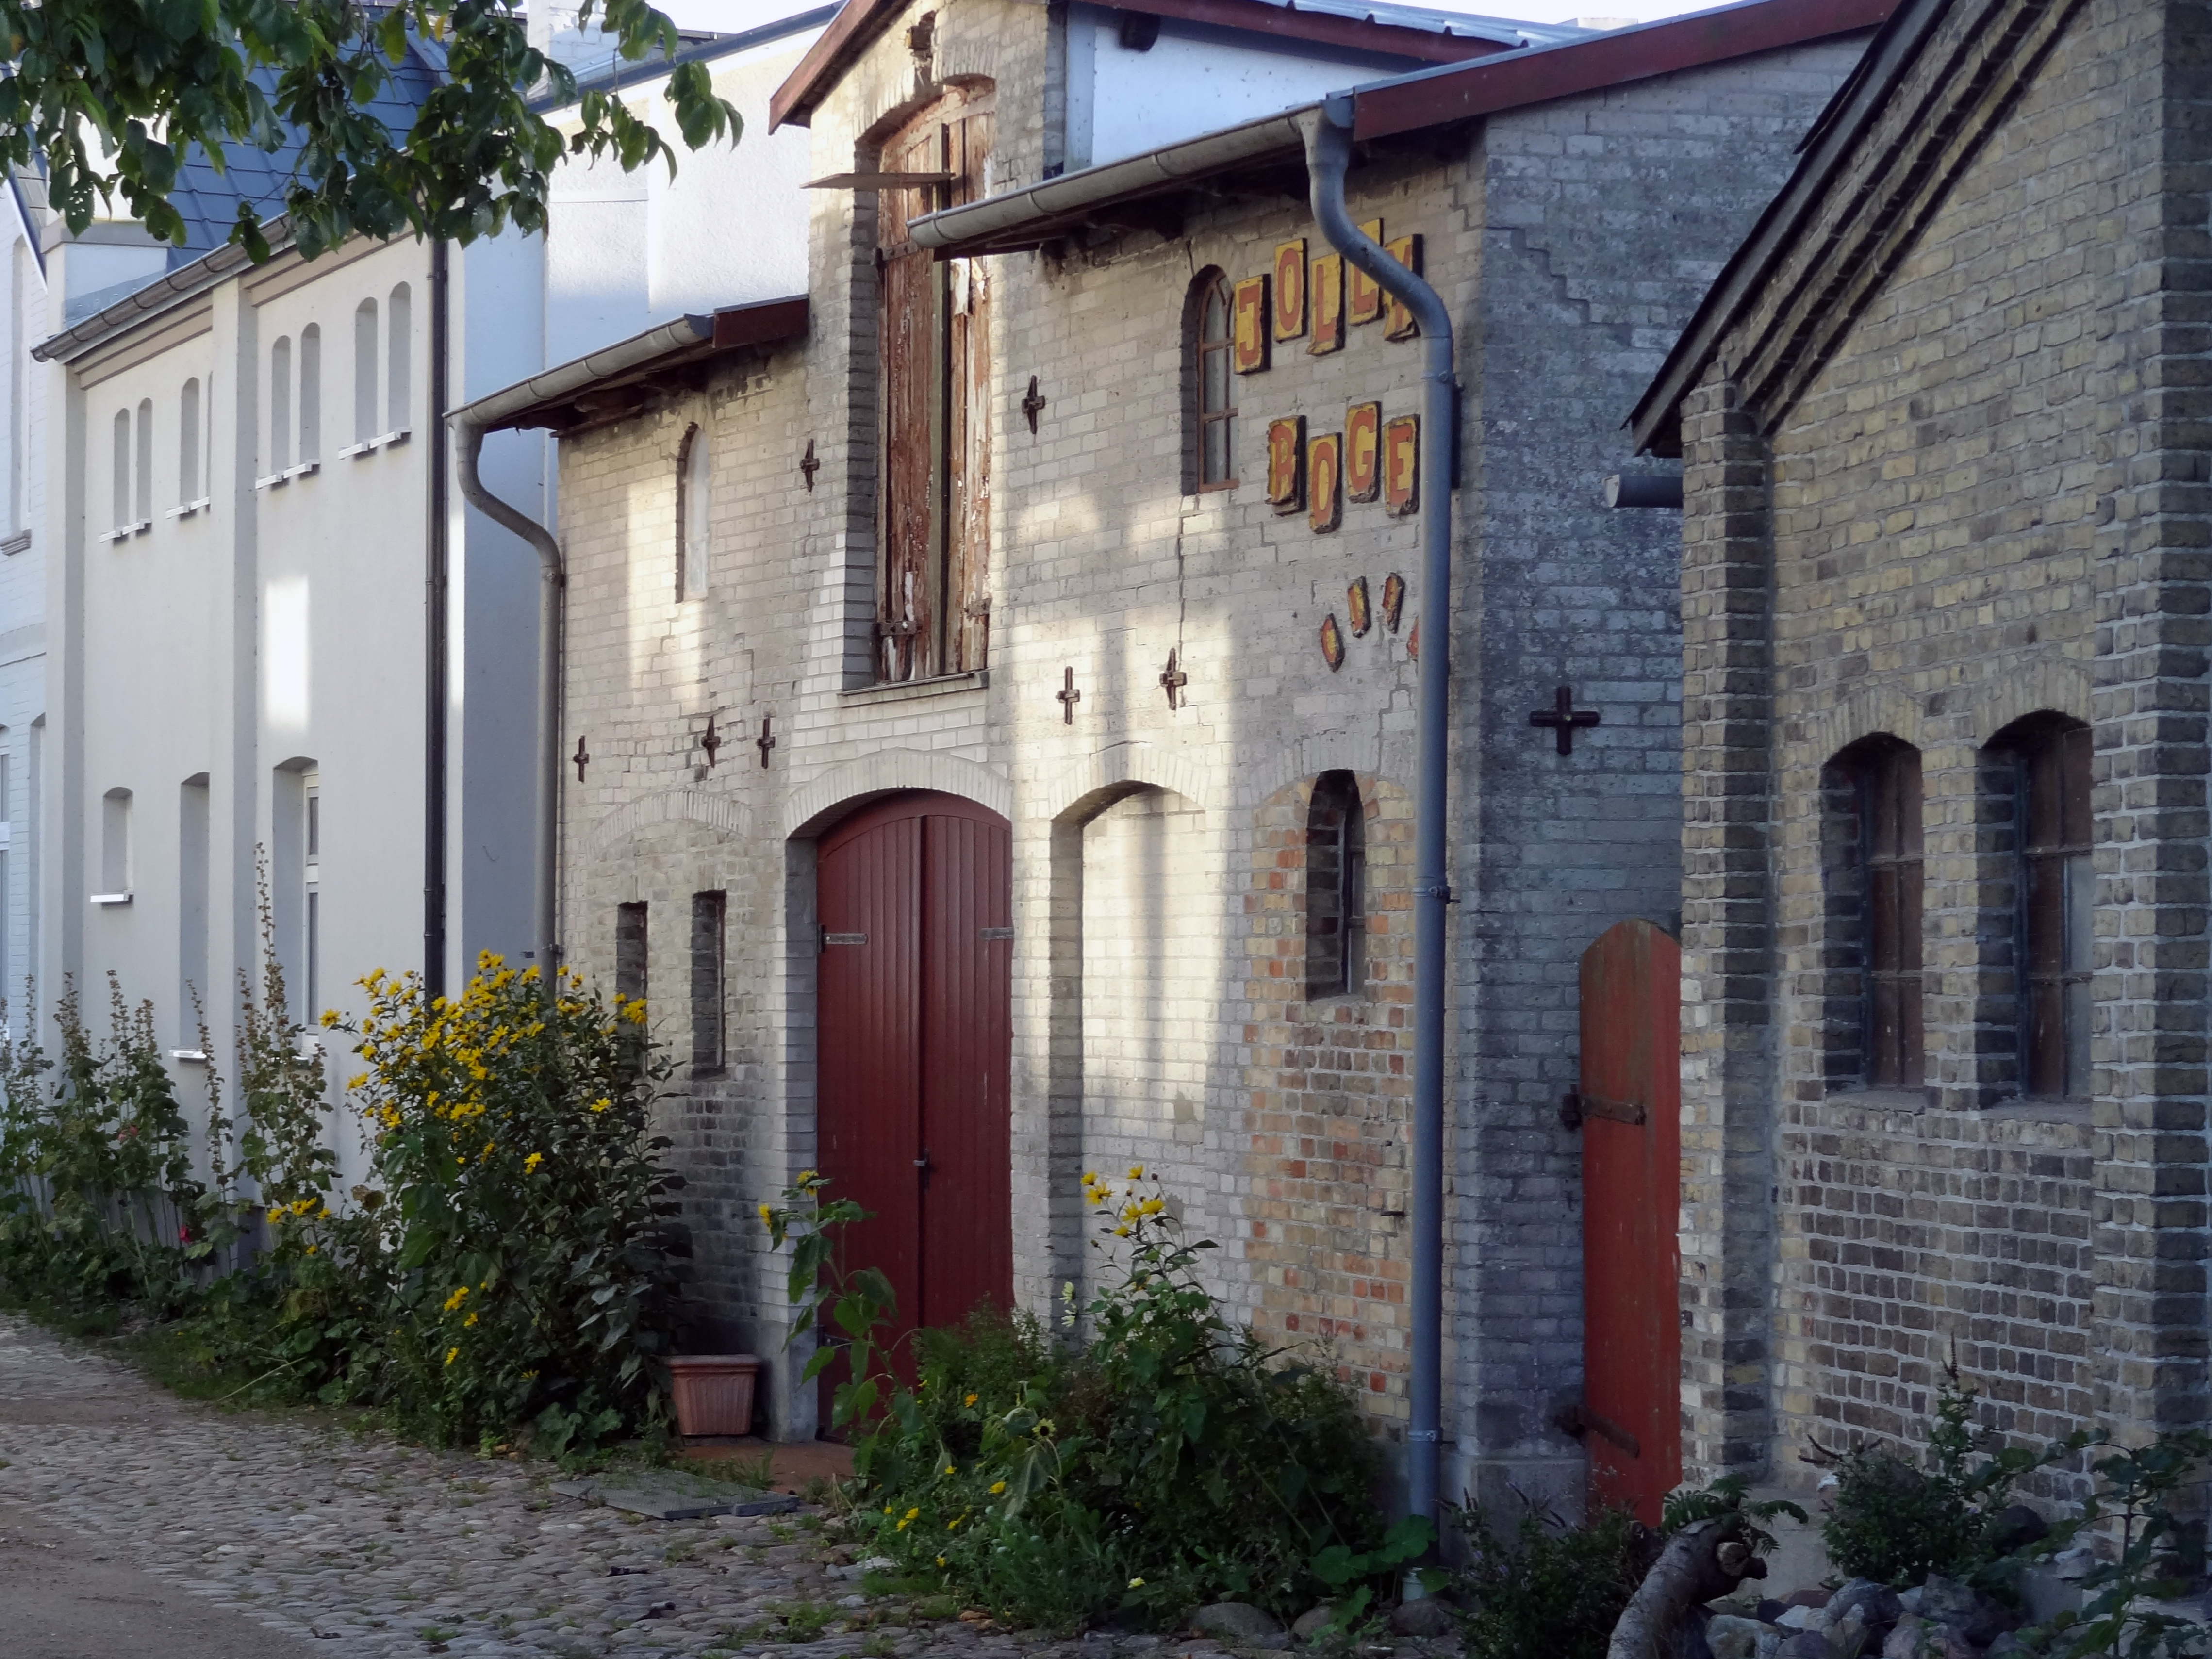 Gasse in Orth